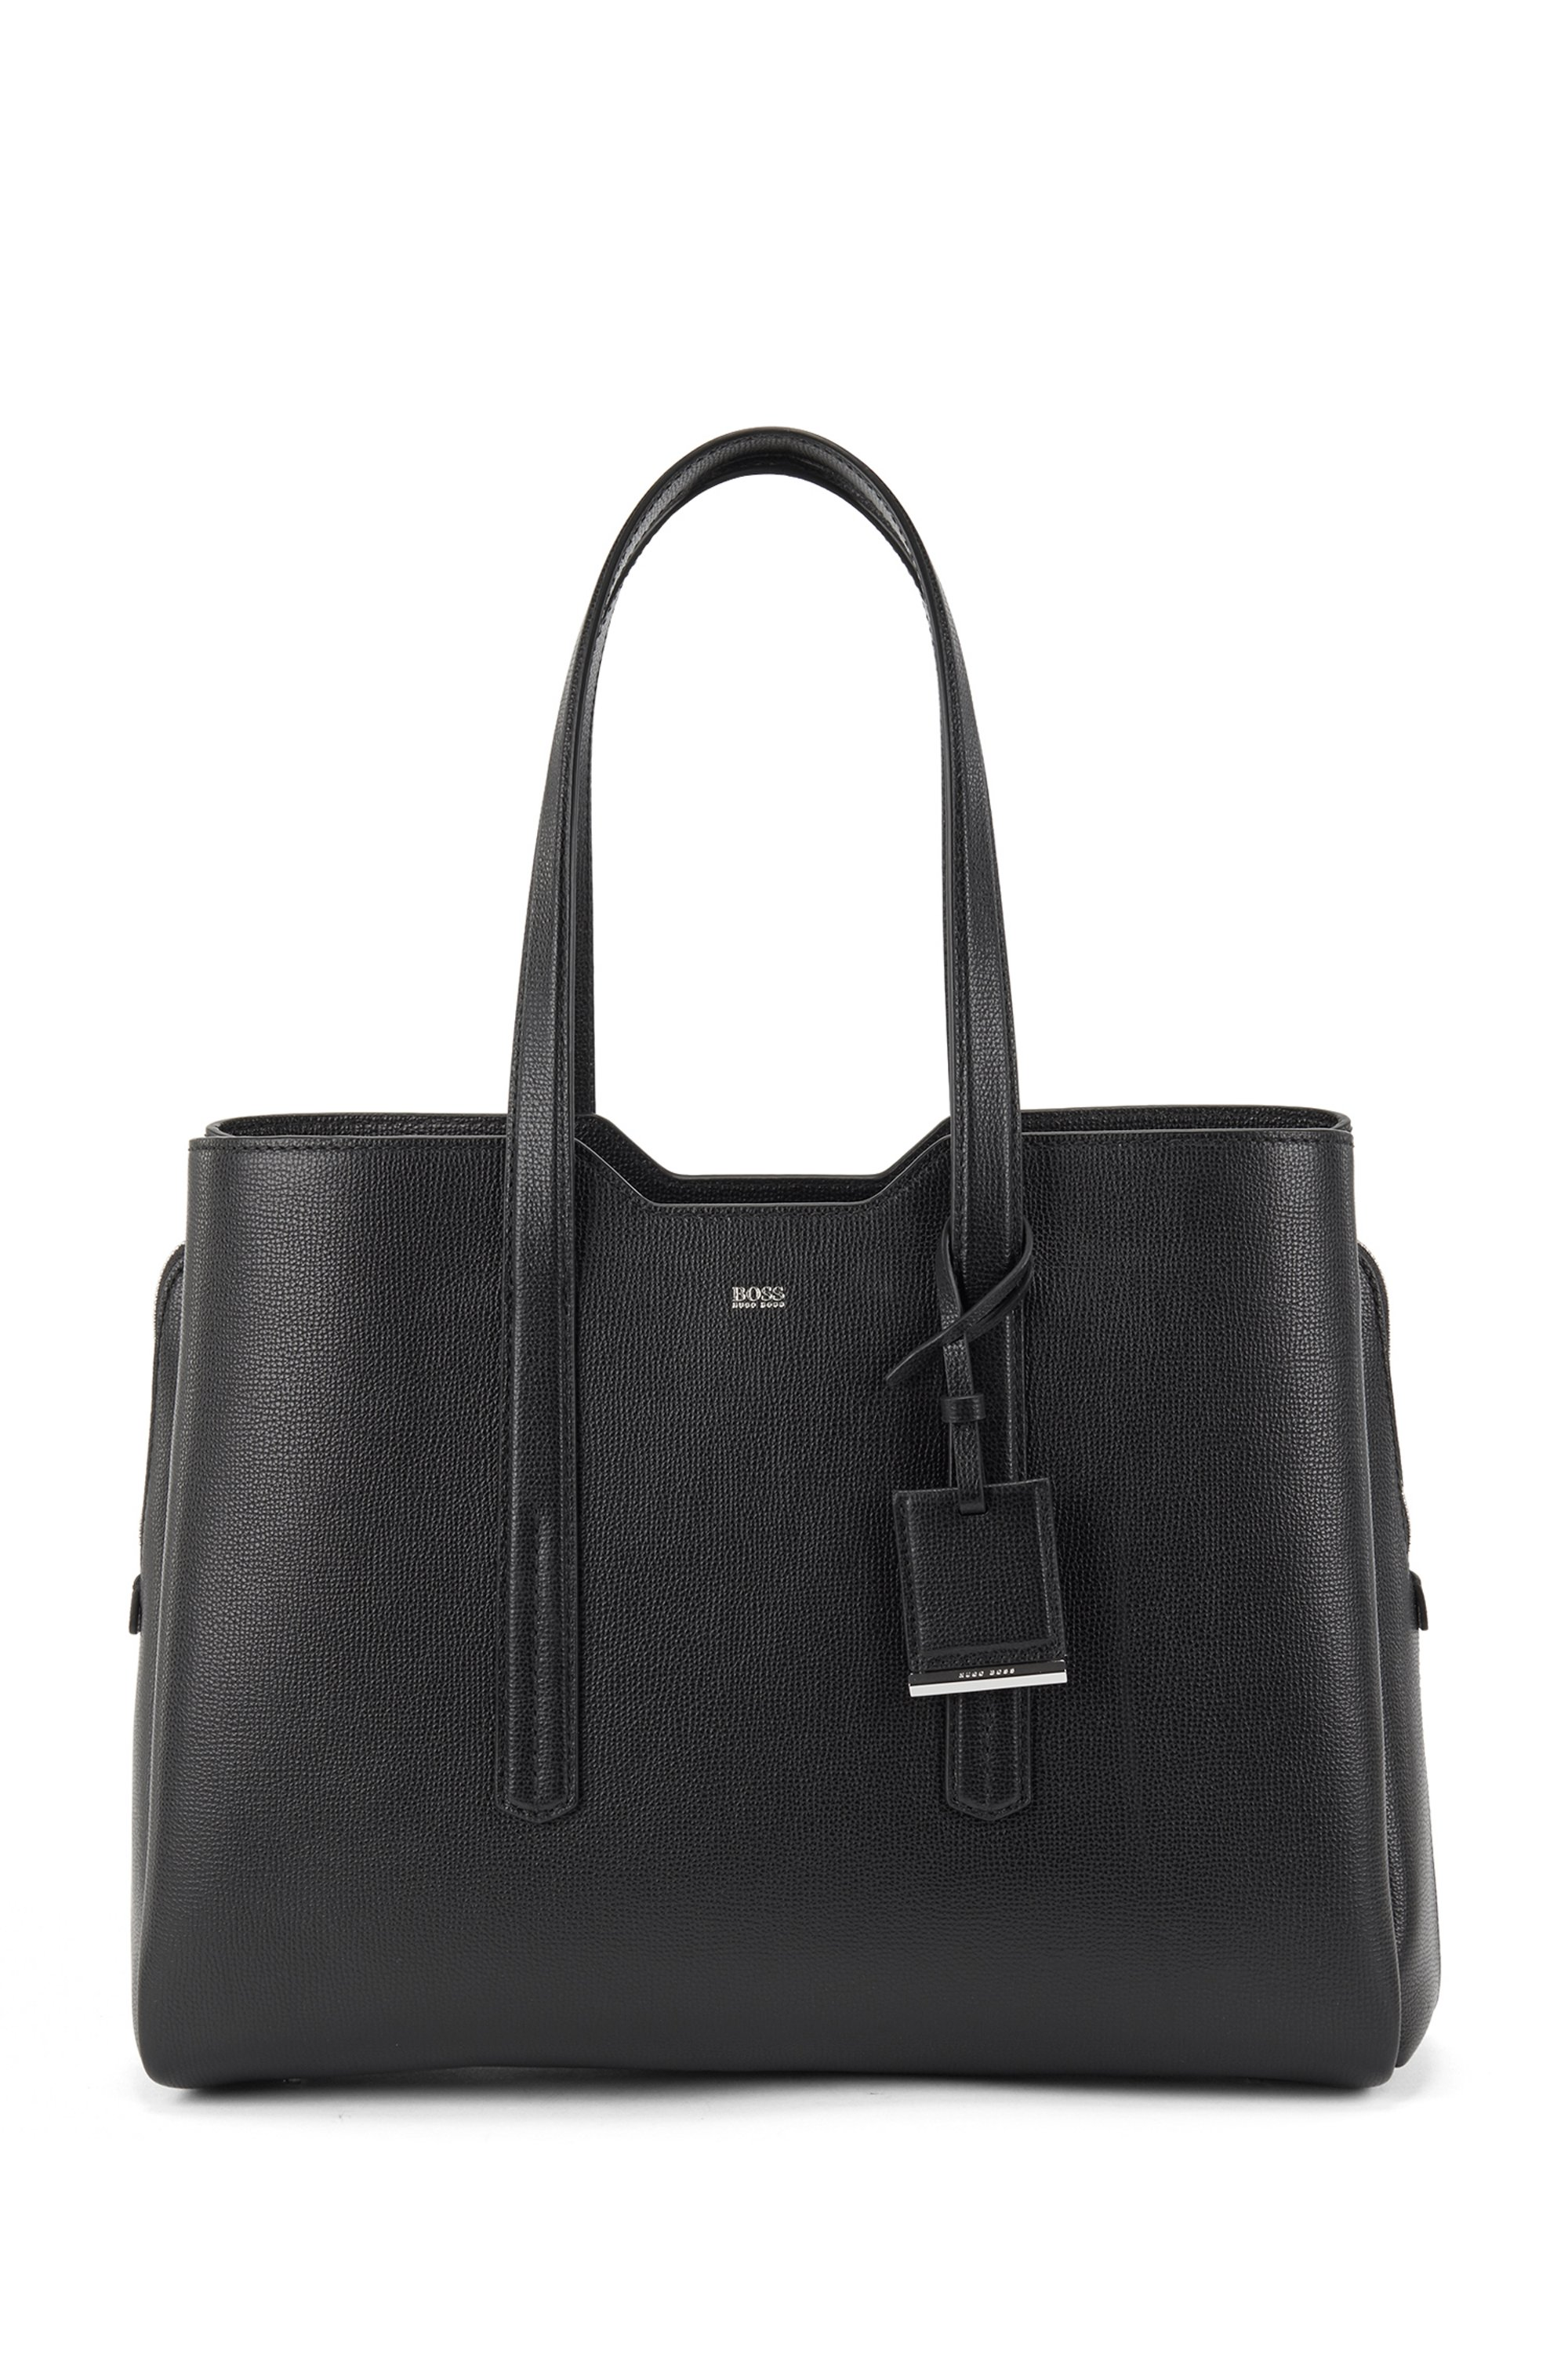 Zipped tote bag in grained Italian leather, Black